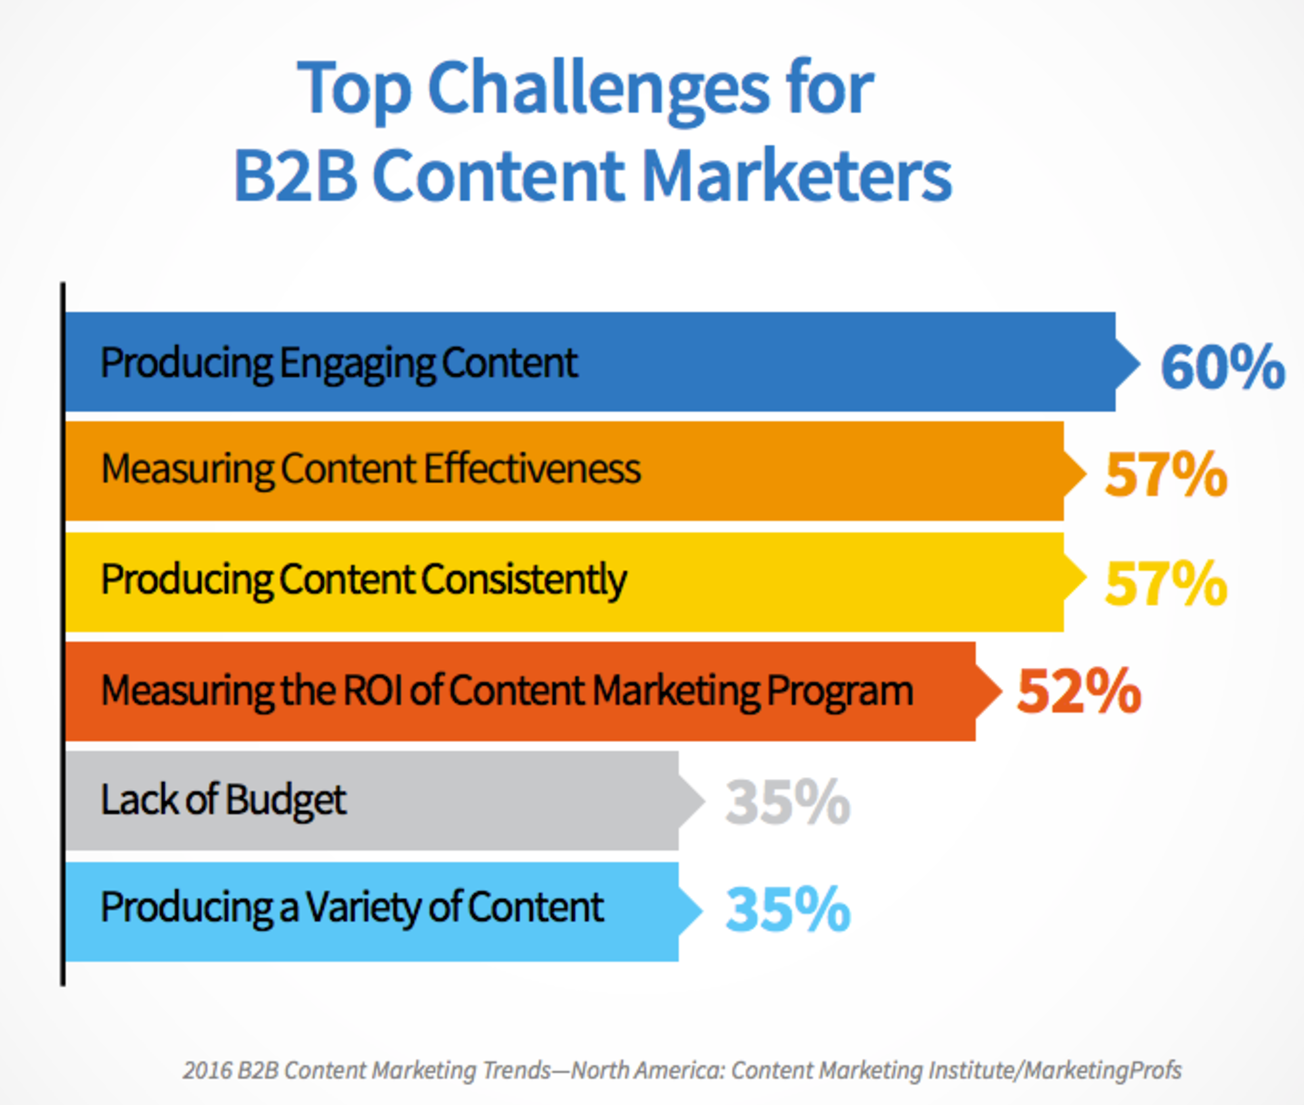 ContentMarketingChallenges.png